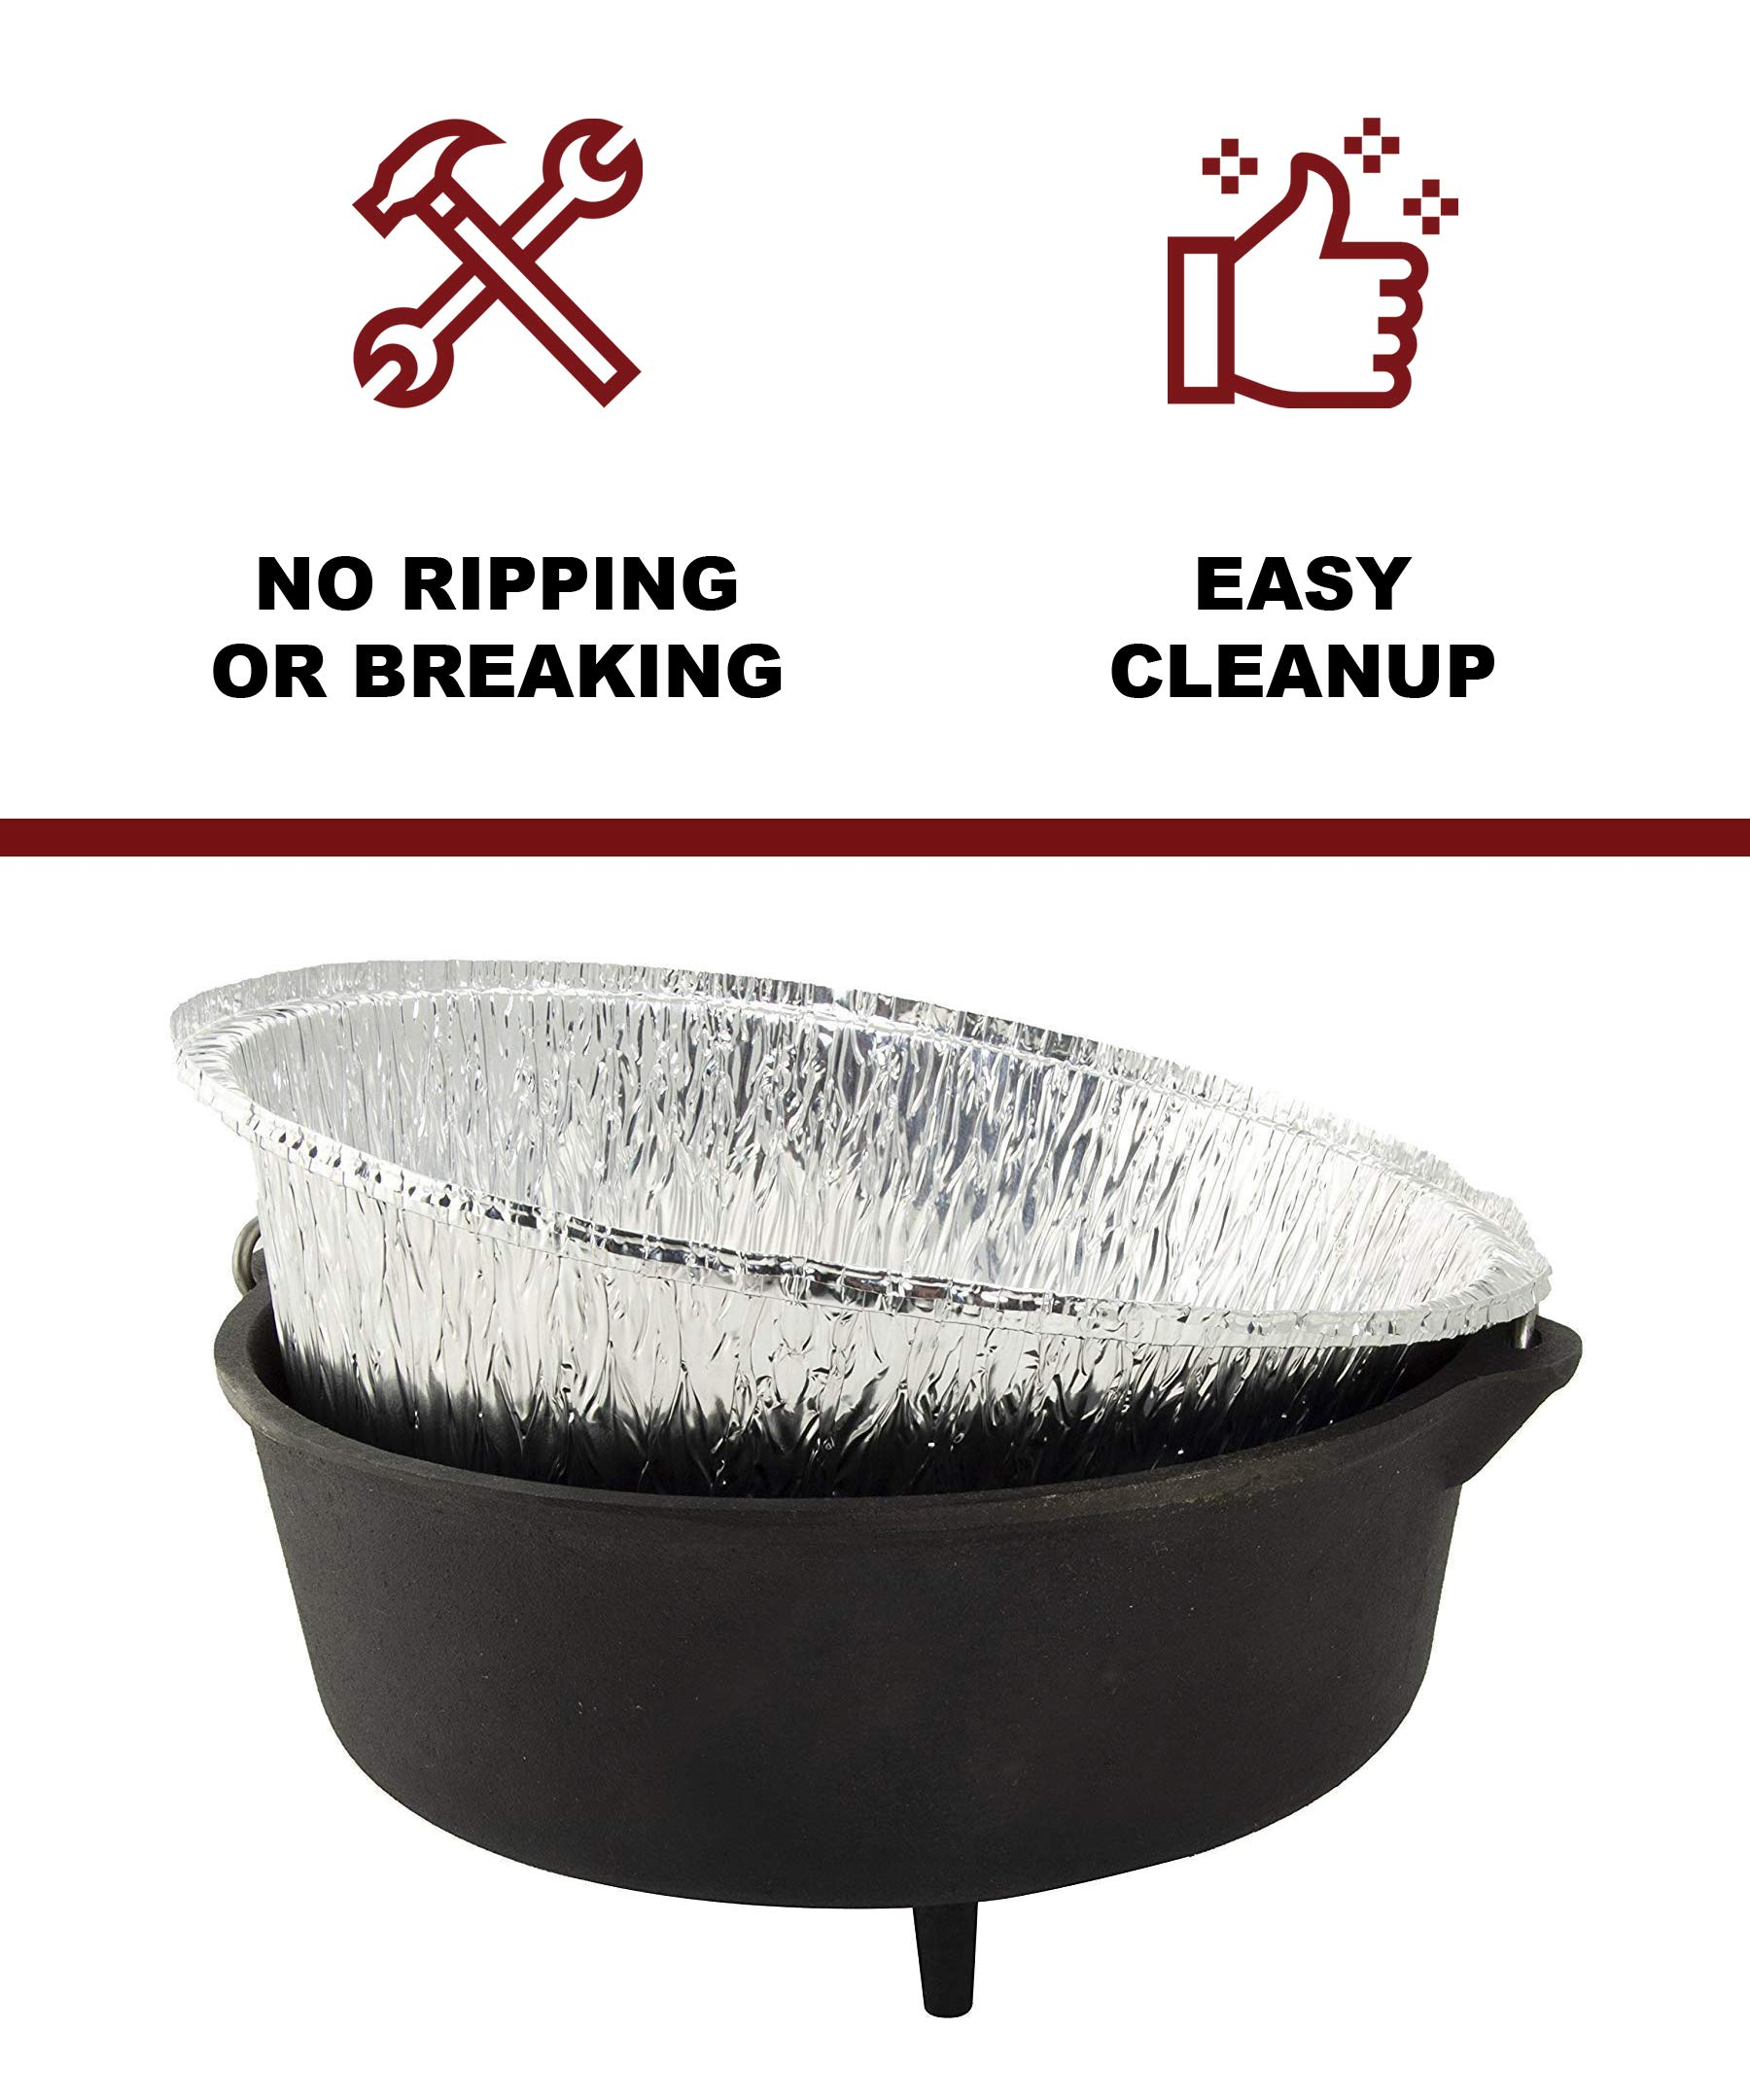 Campliner Original Dutch Oven Liners, 30 Pack of 12-Inch 6-Quart Disposable Liners - No More Cleaning Or Seasoning Your Dutch Ovens. Fits Lodge, Camp Chef, and Other 12'' Cast Iron Dutch Ovens by CAMP LINER (Image #2)